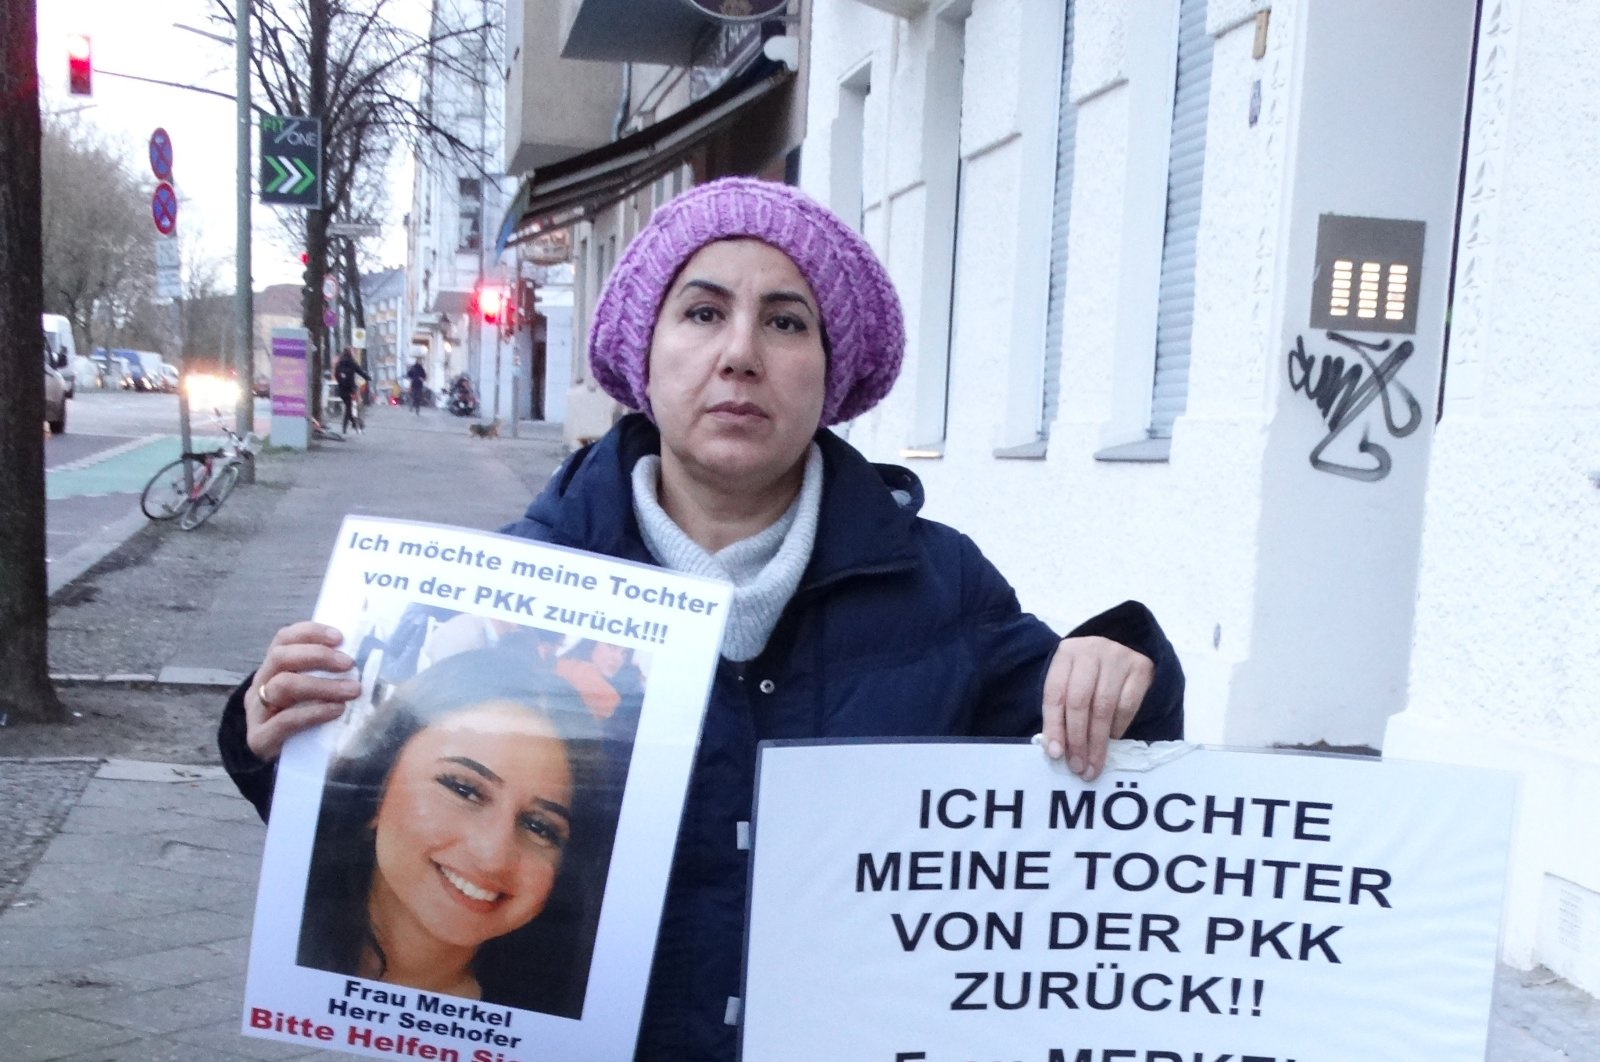 Maide T. stages a protest outside the German Chancellery, demanding the return of her daughter who was forcibly recruited by PKK terrorists, Berlin, June 14, 2020. (DHA)